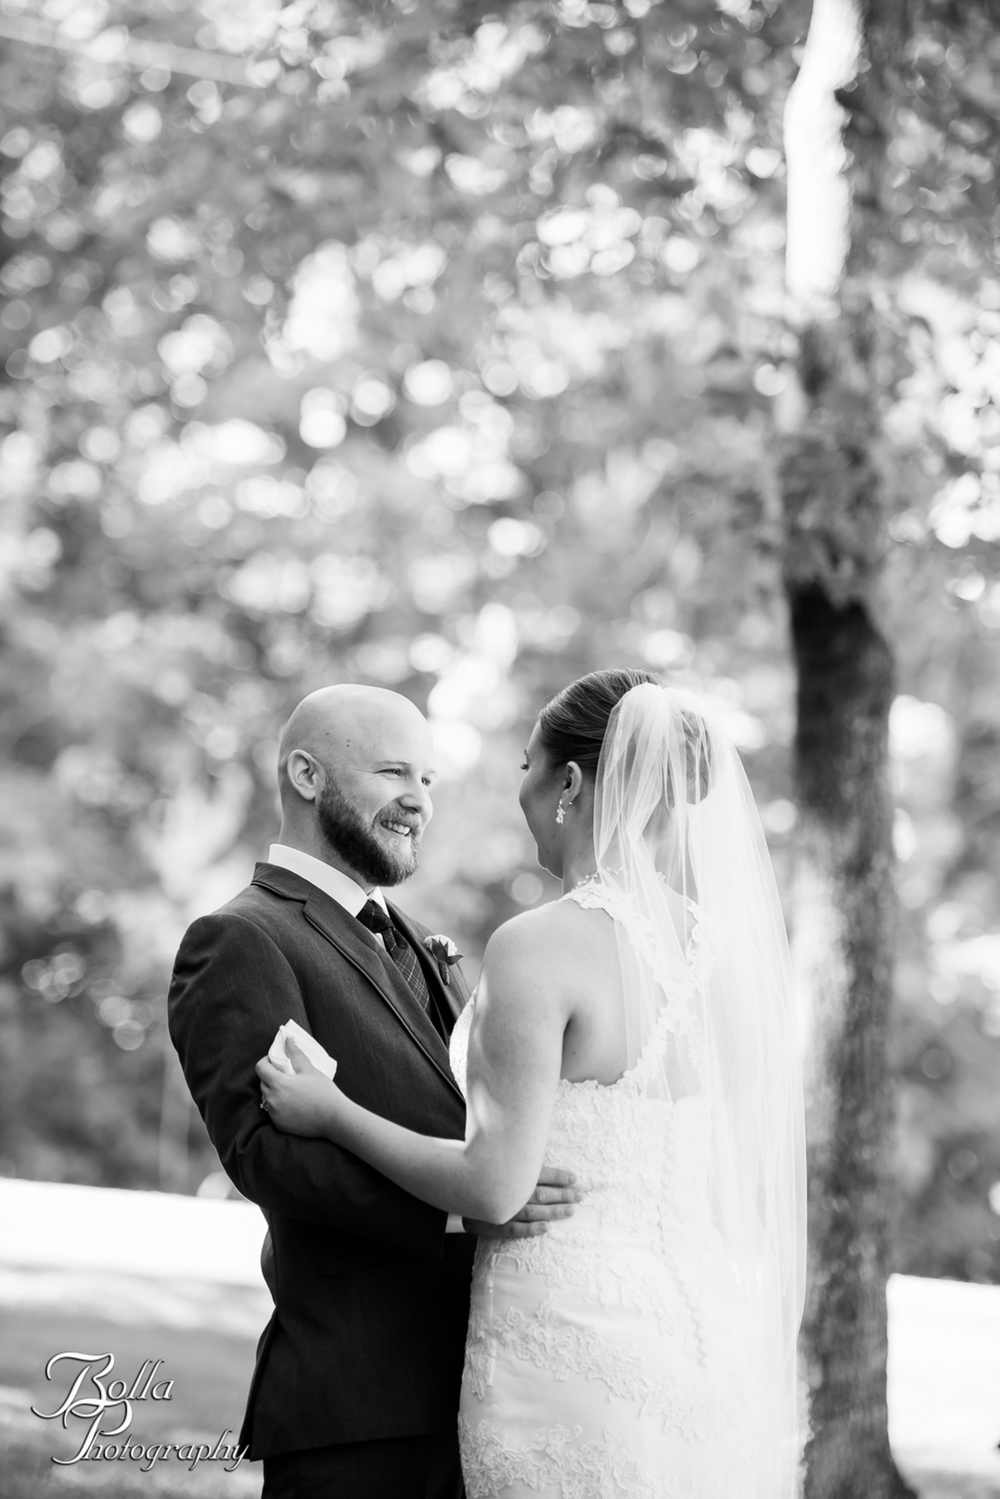 Bolla_Photography_St_Louis_wedding_photographer-0174.jpg